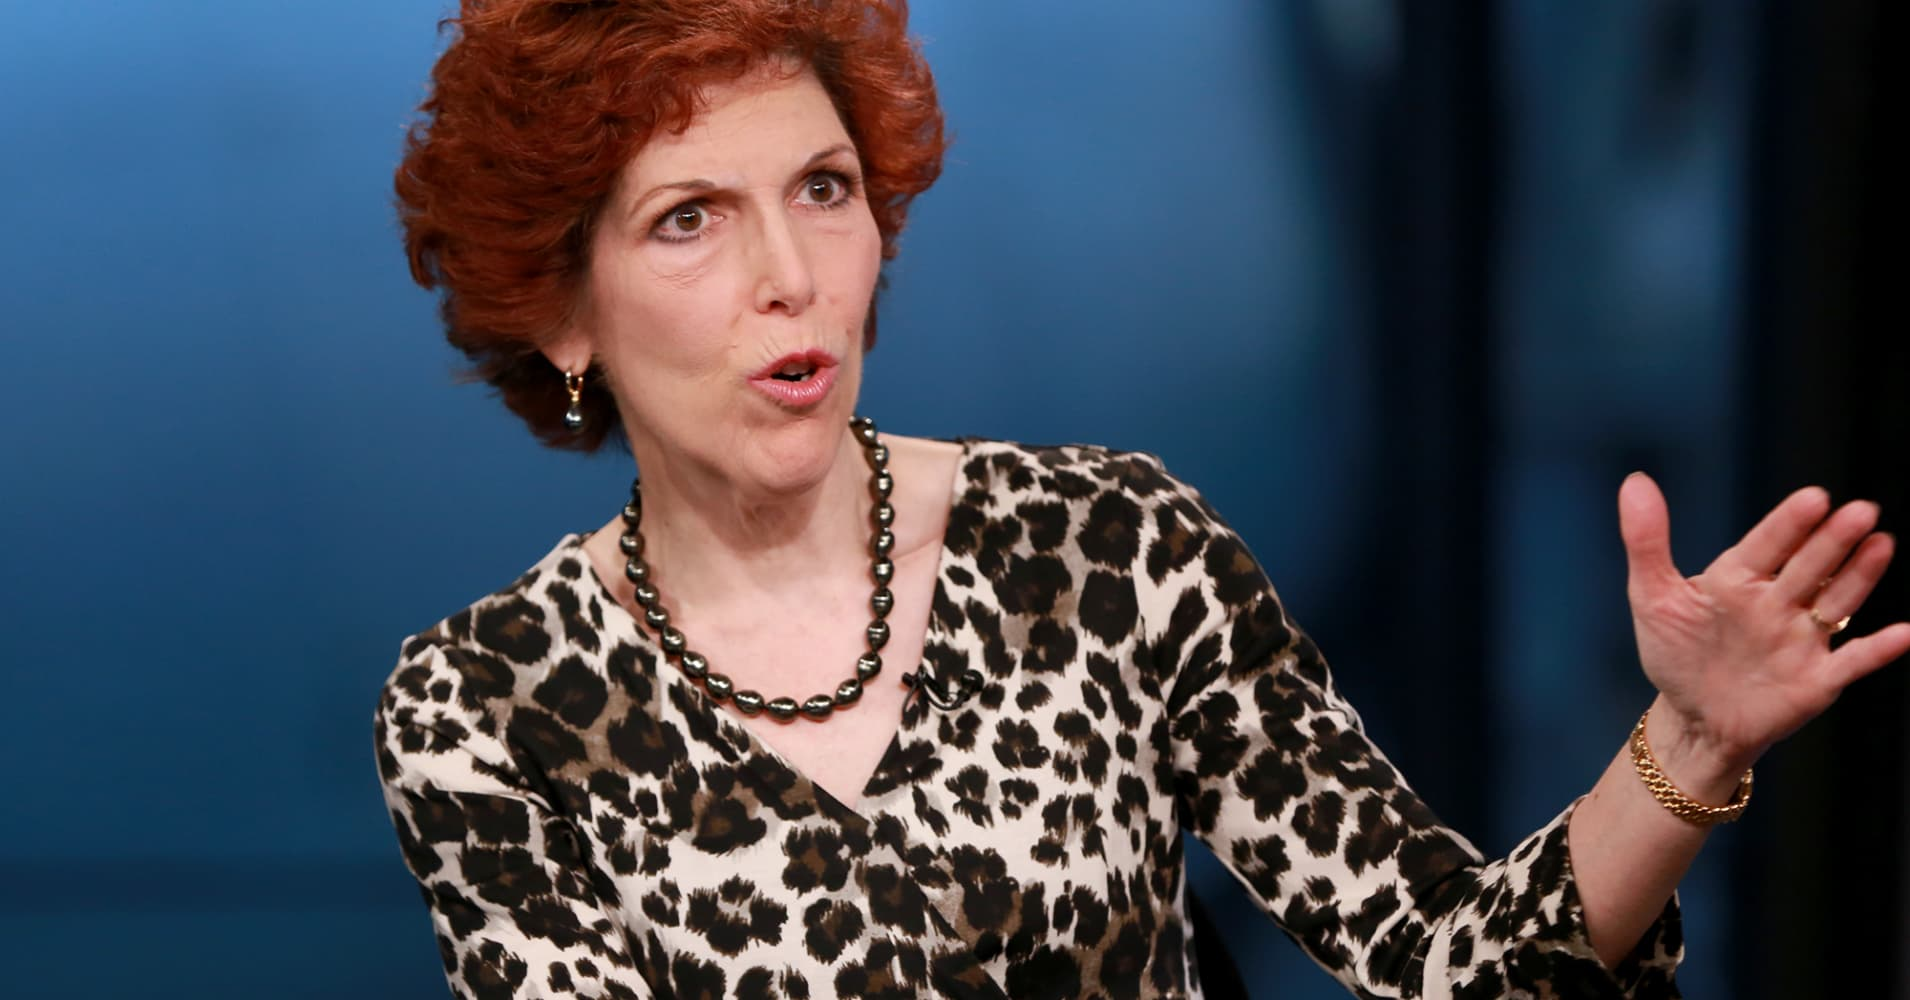 Fed's Mester: Rate hikes are needed since US economy is 'pretty good'